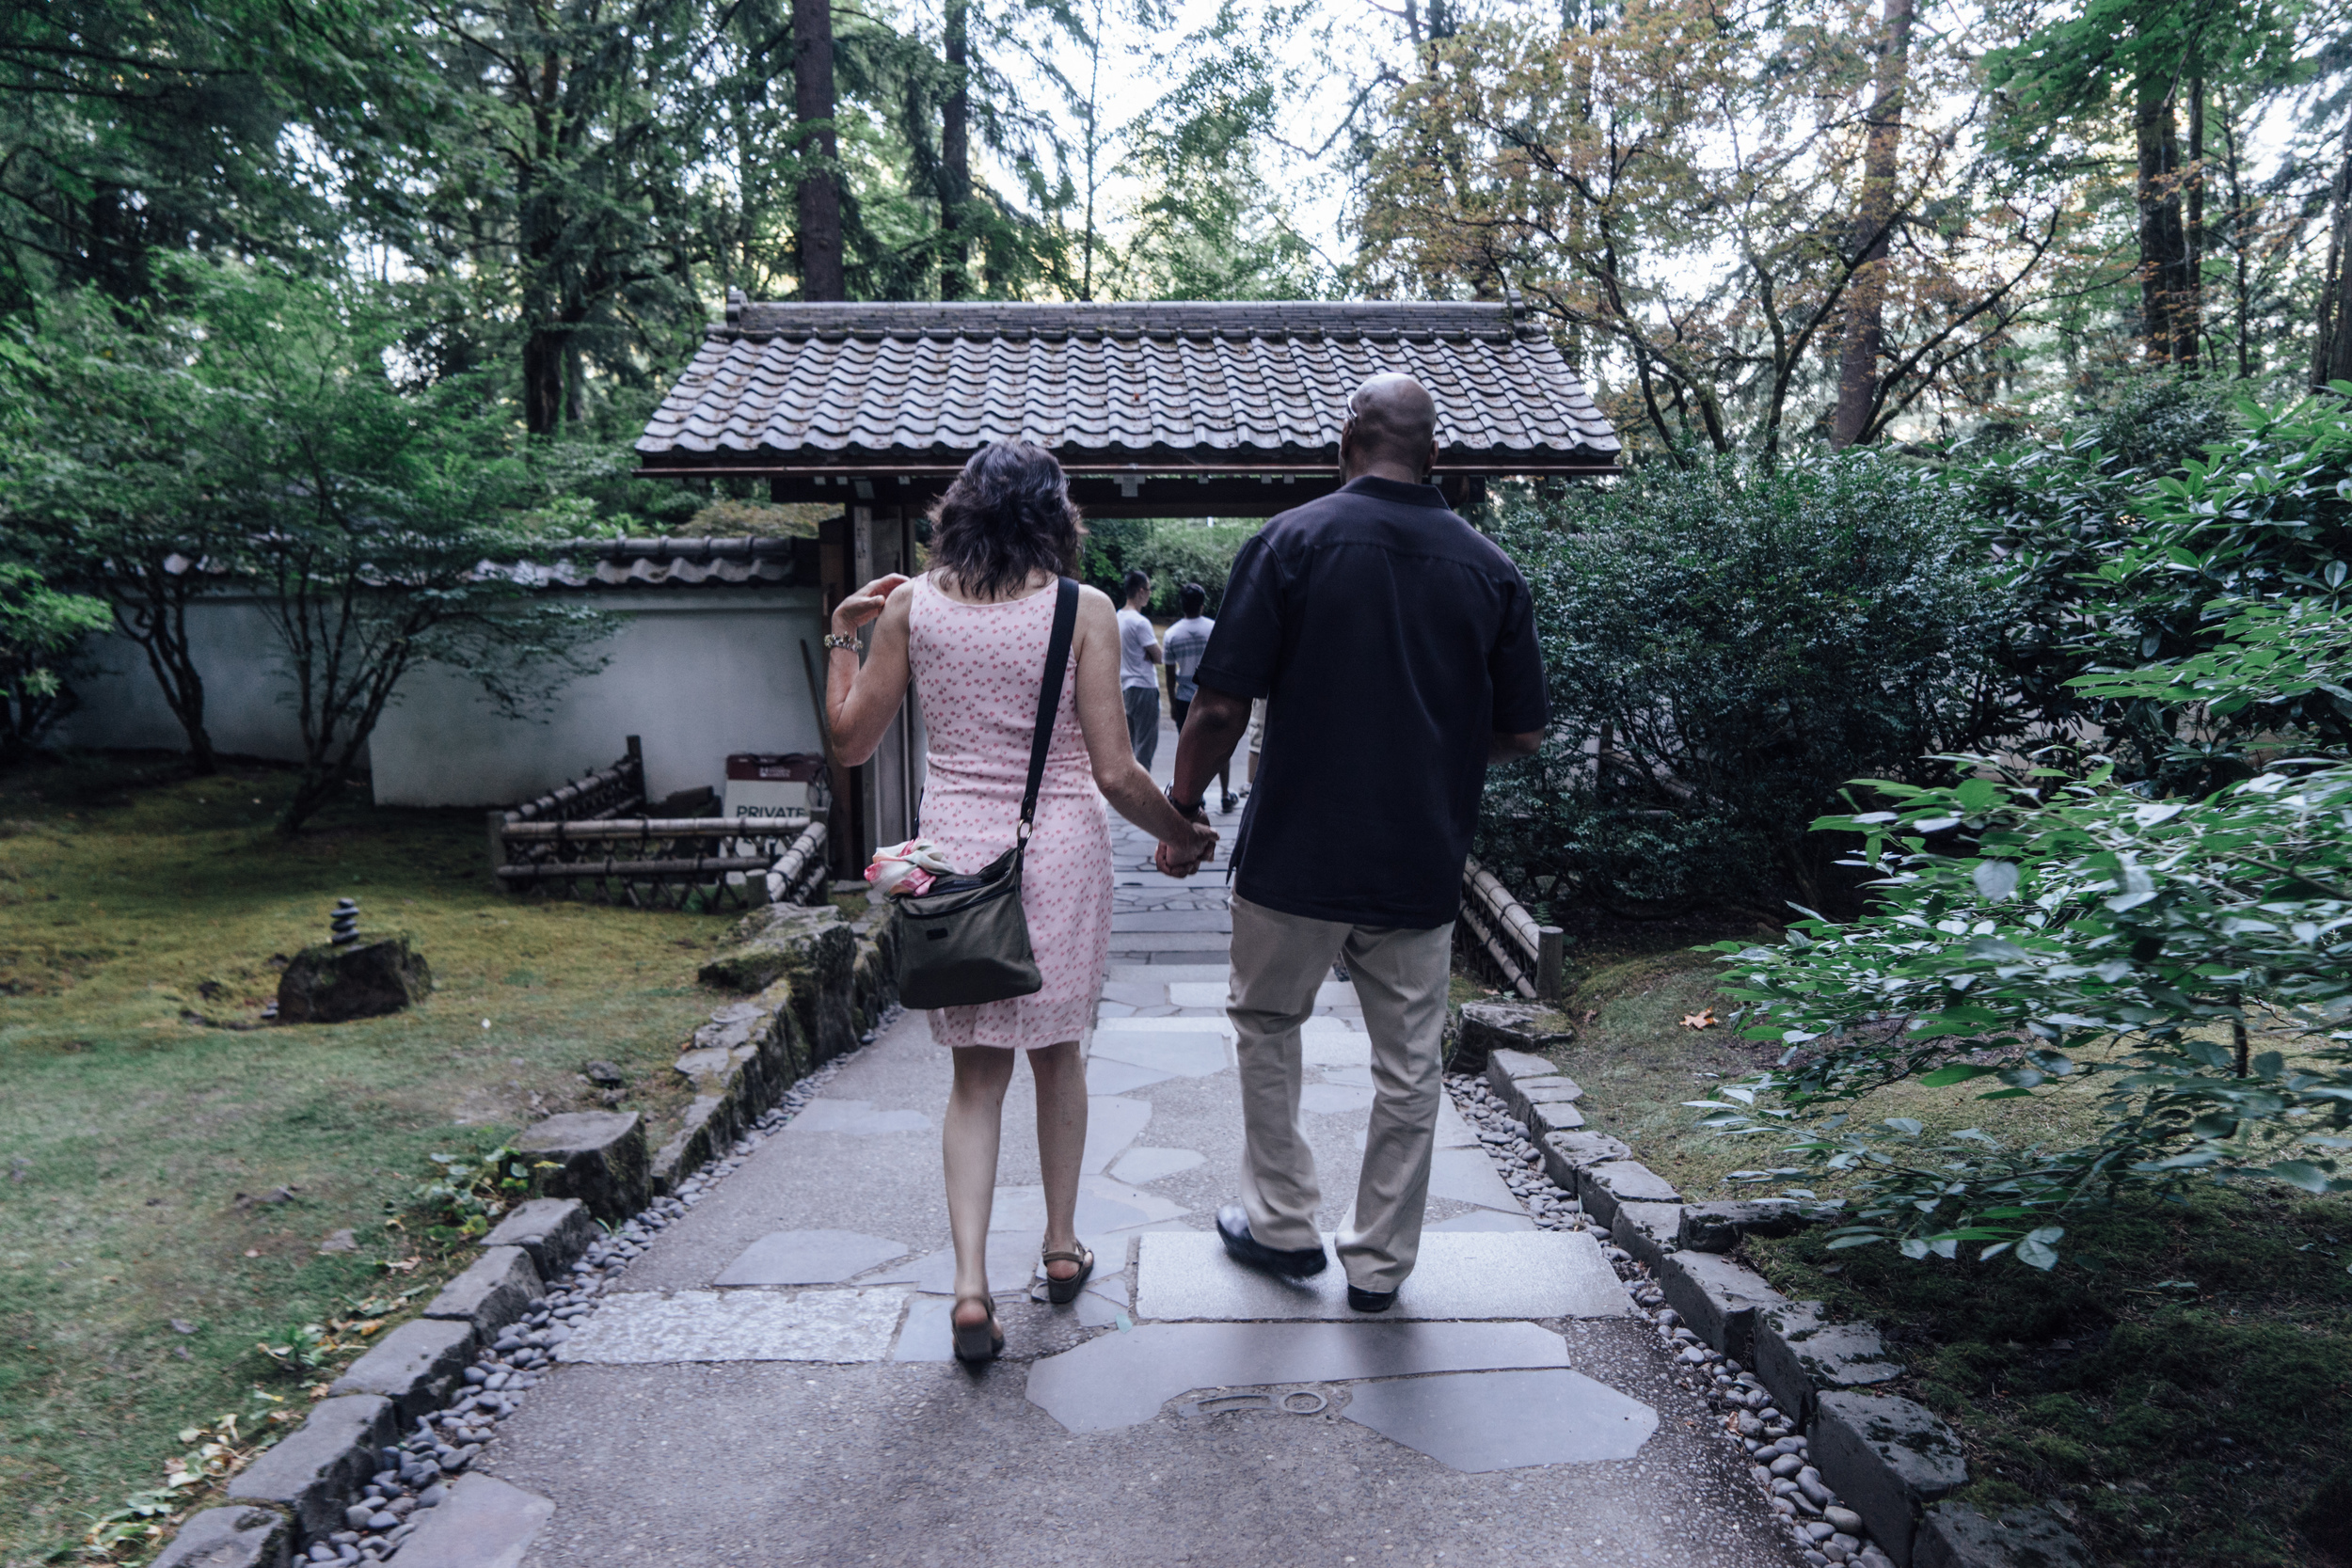 We took an evening stroll like this local couple at the  Portland Japanese Garden  in Washington Park.